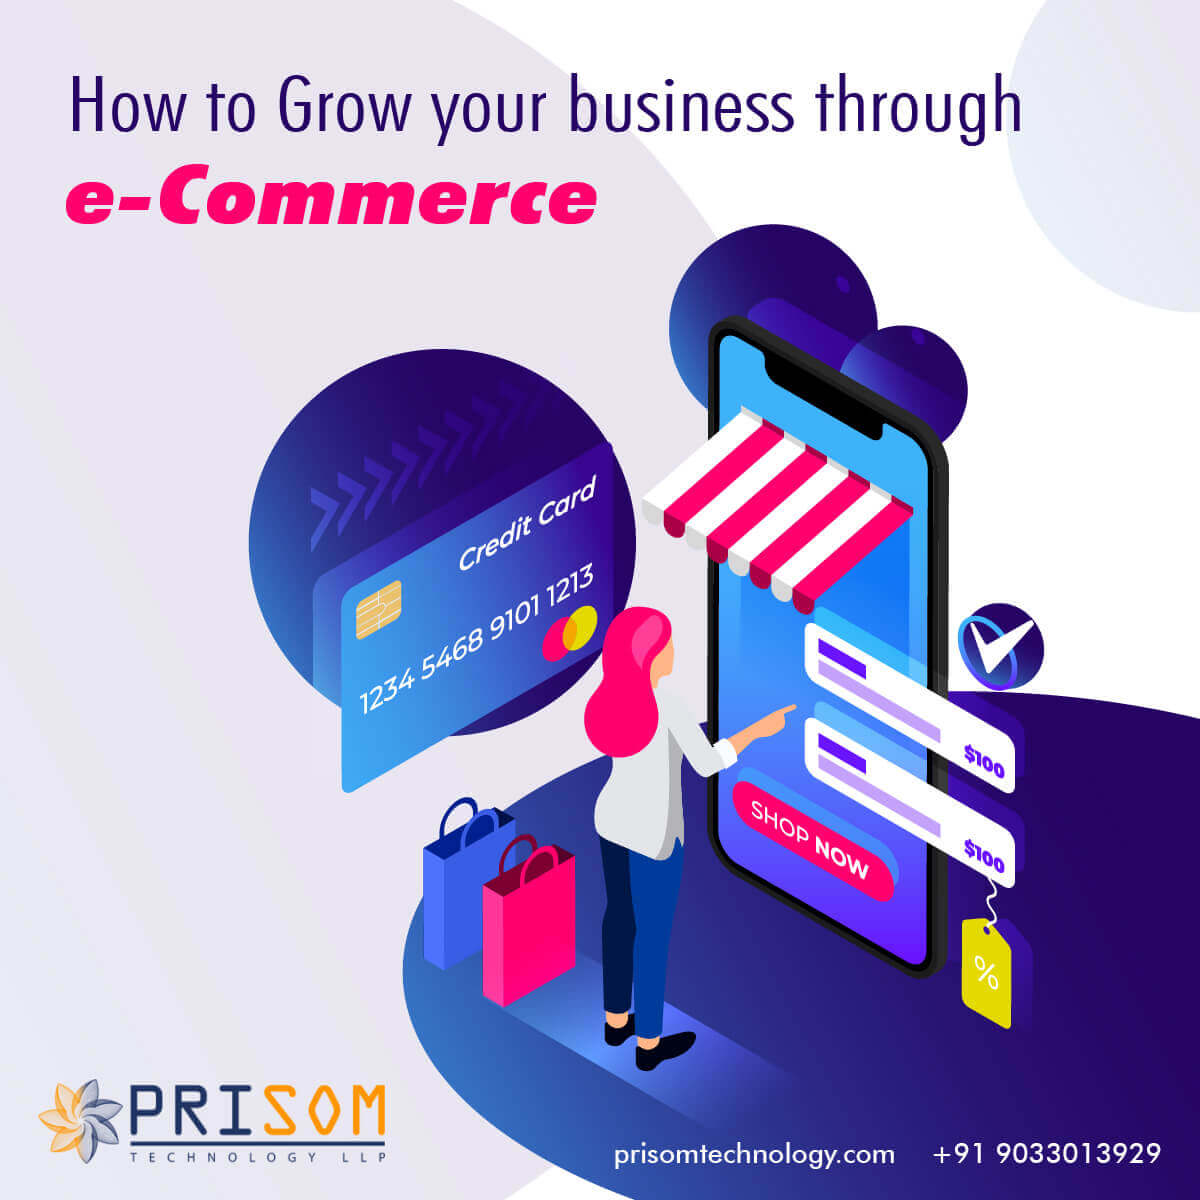 How to Grow Your Business Through E-Commerce